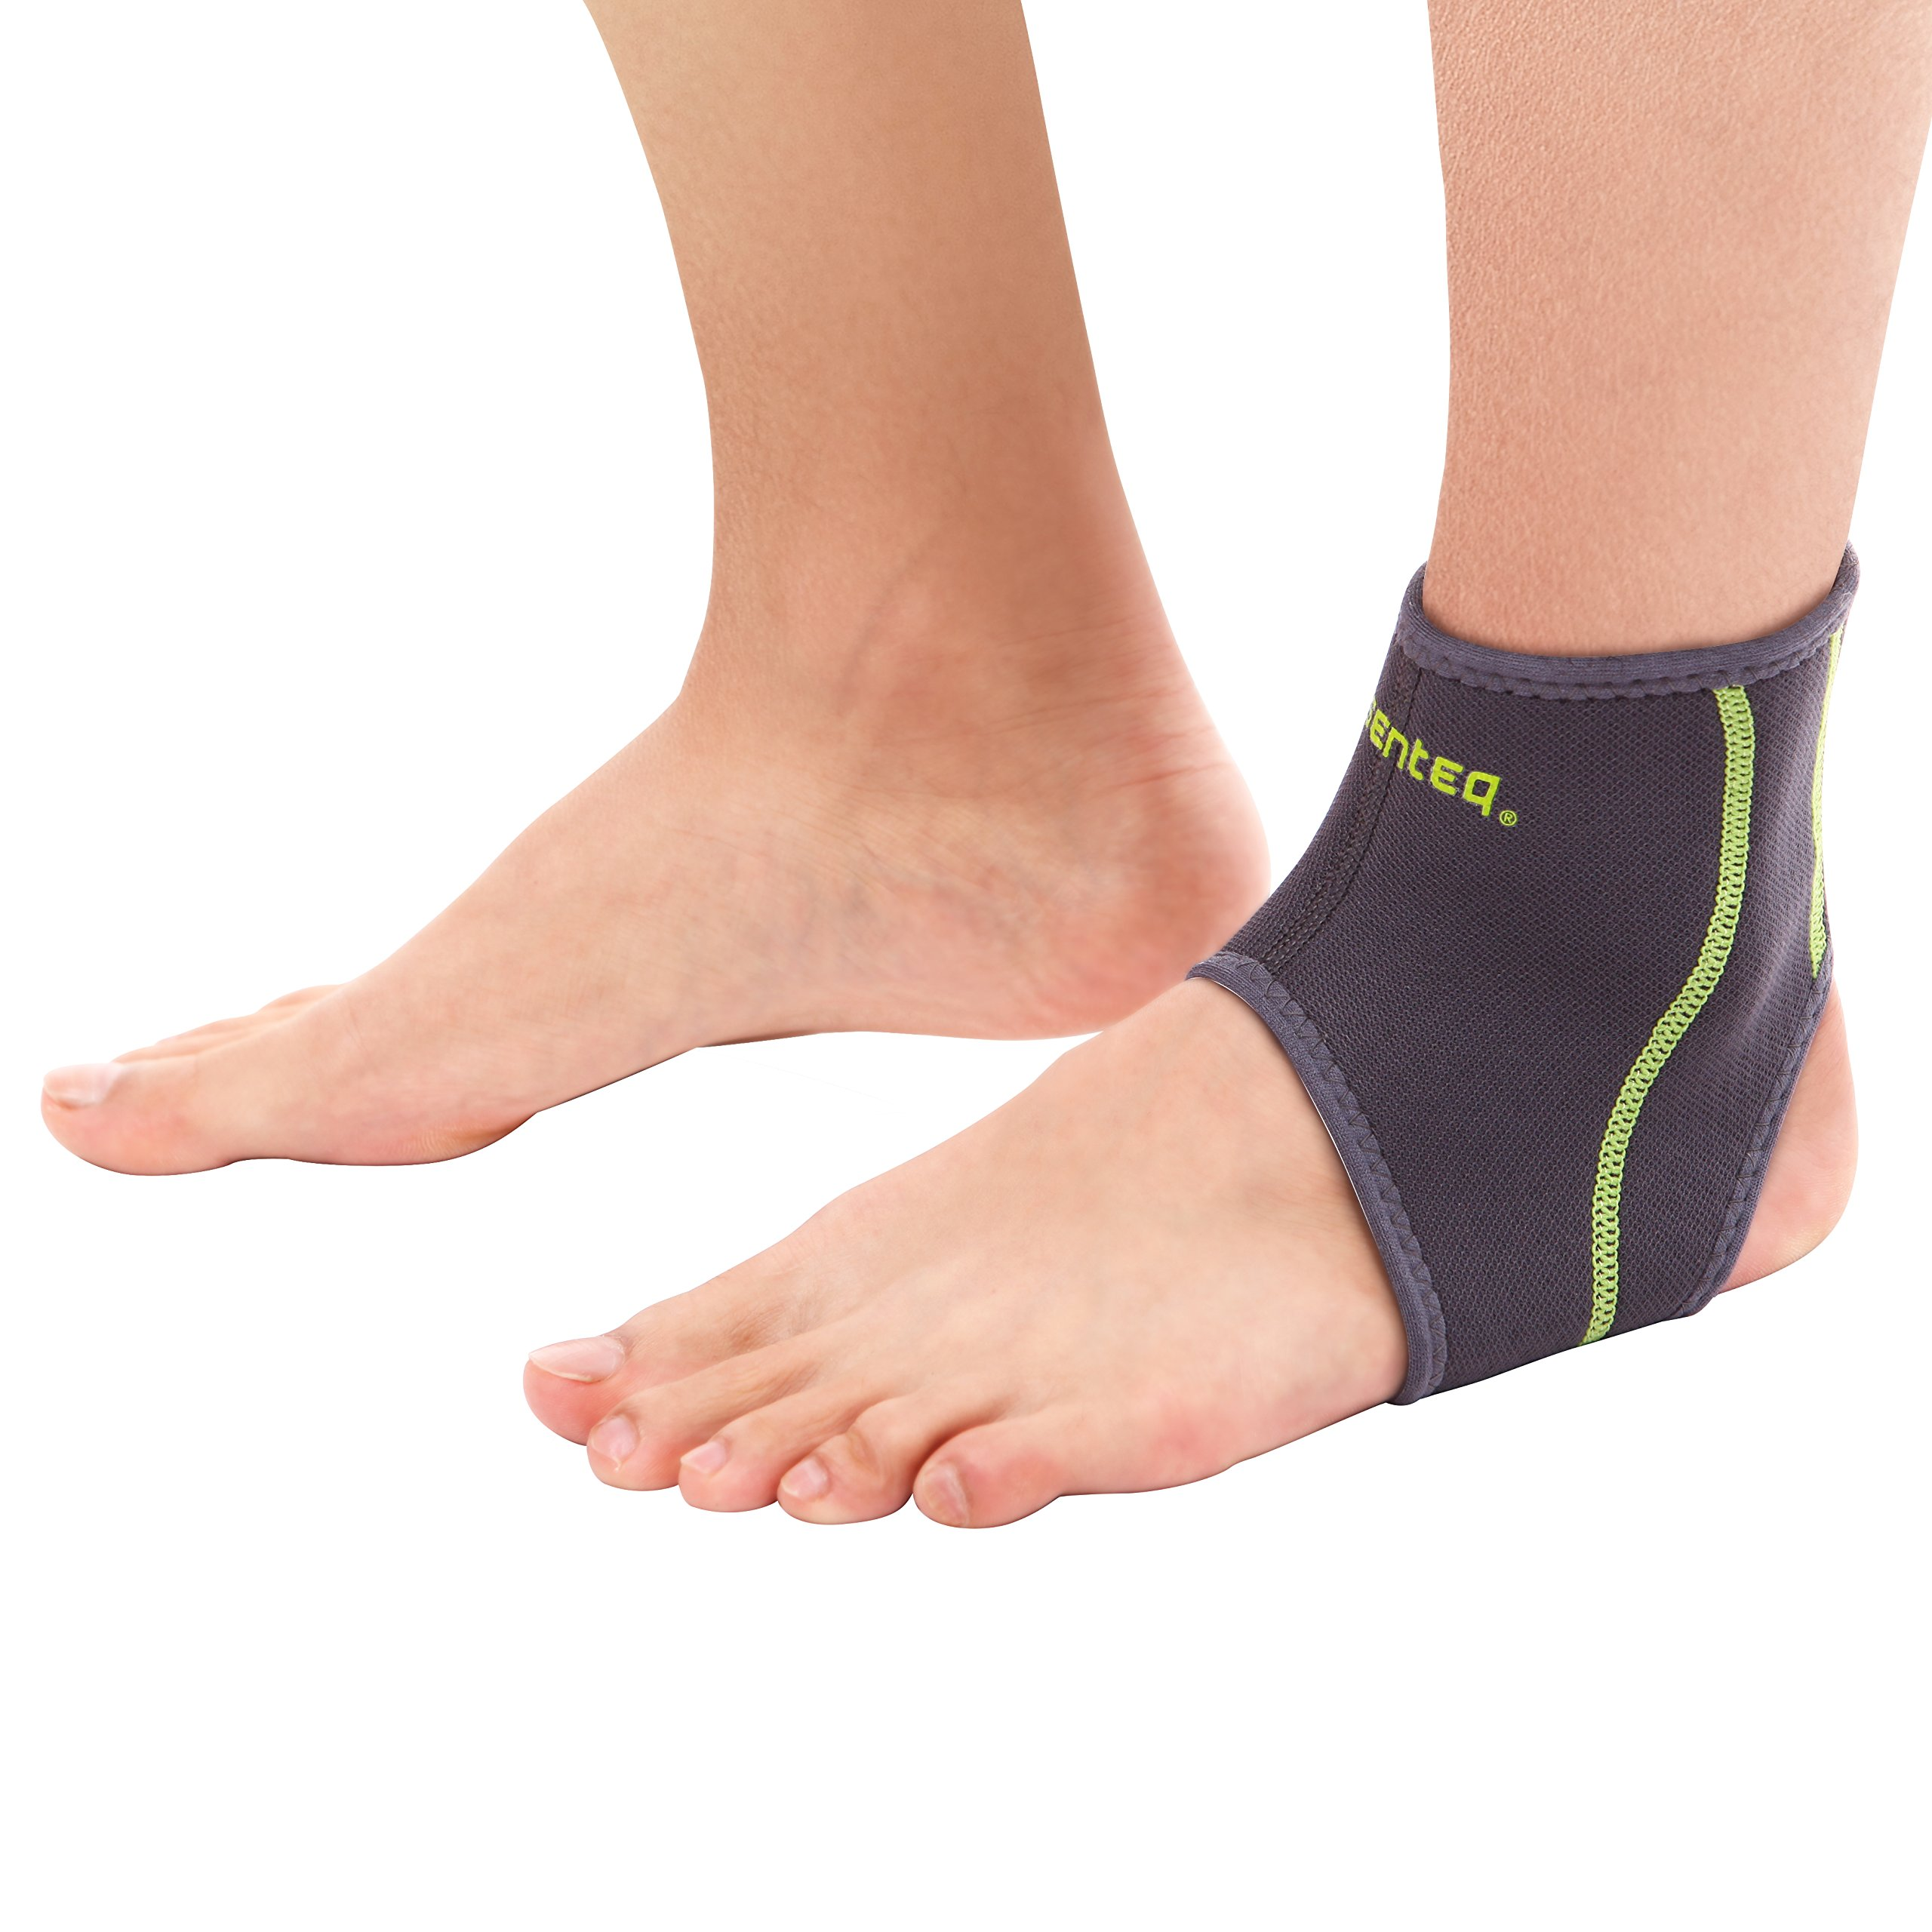 SENTEQ Compression Ankle Brace - Medical Grade and FDA Approved. Provides Support and Pain Relief for Sprains, Strains, Arthritis and Torn Tendons in Foot and Ankle (M)